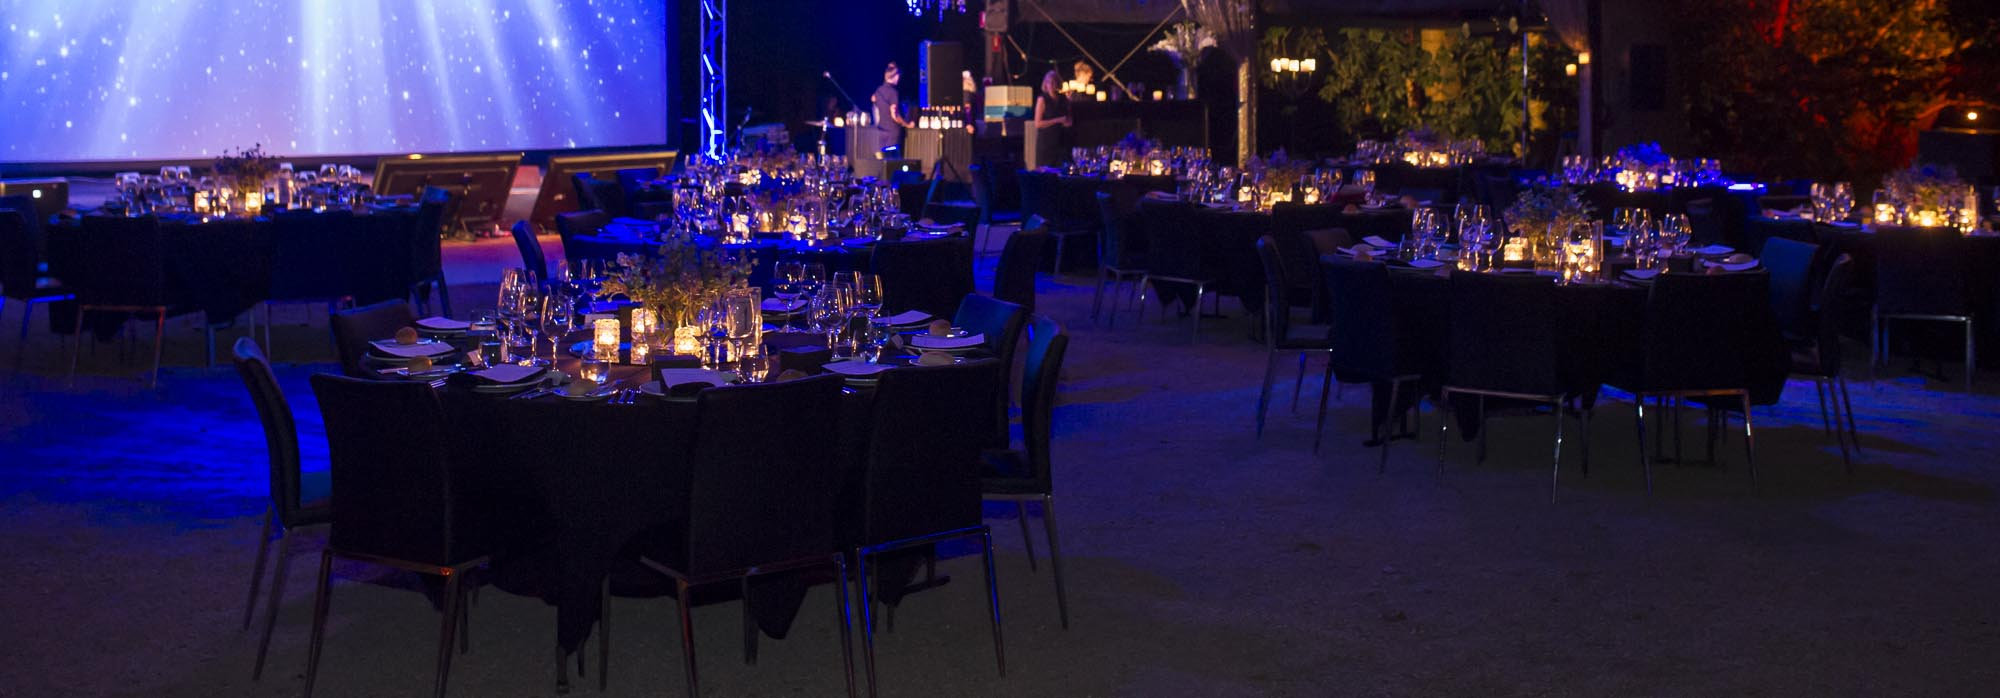 gala dinner event services